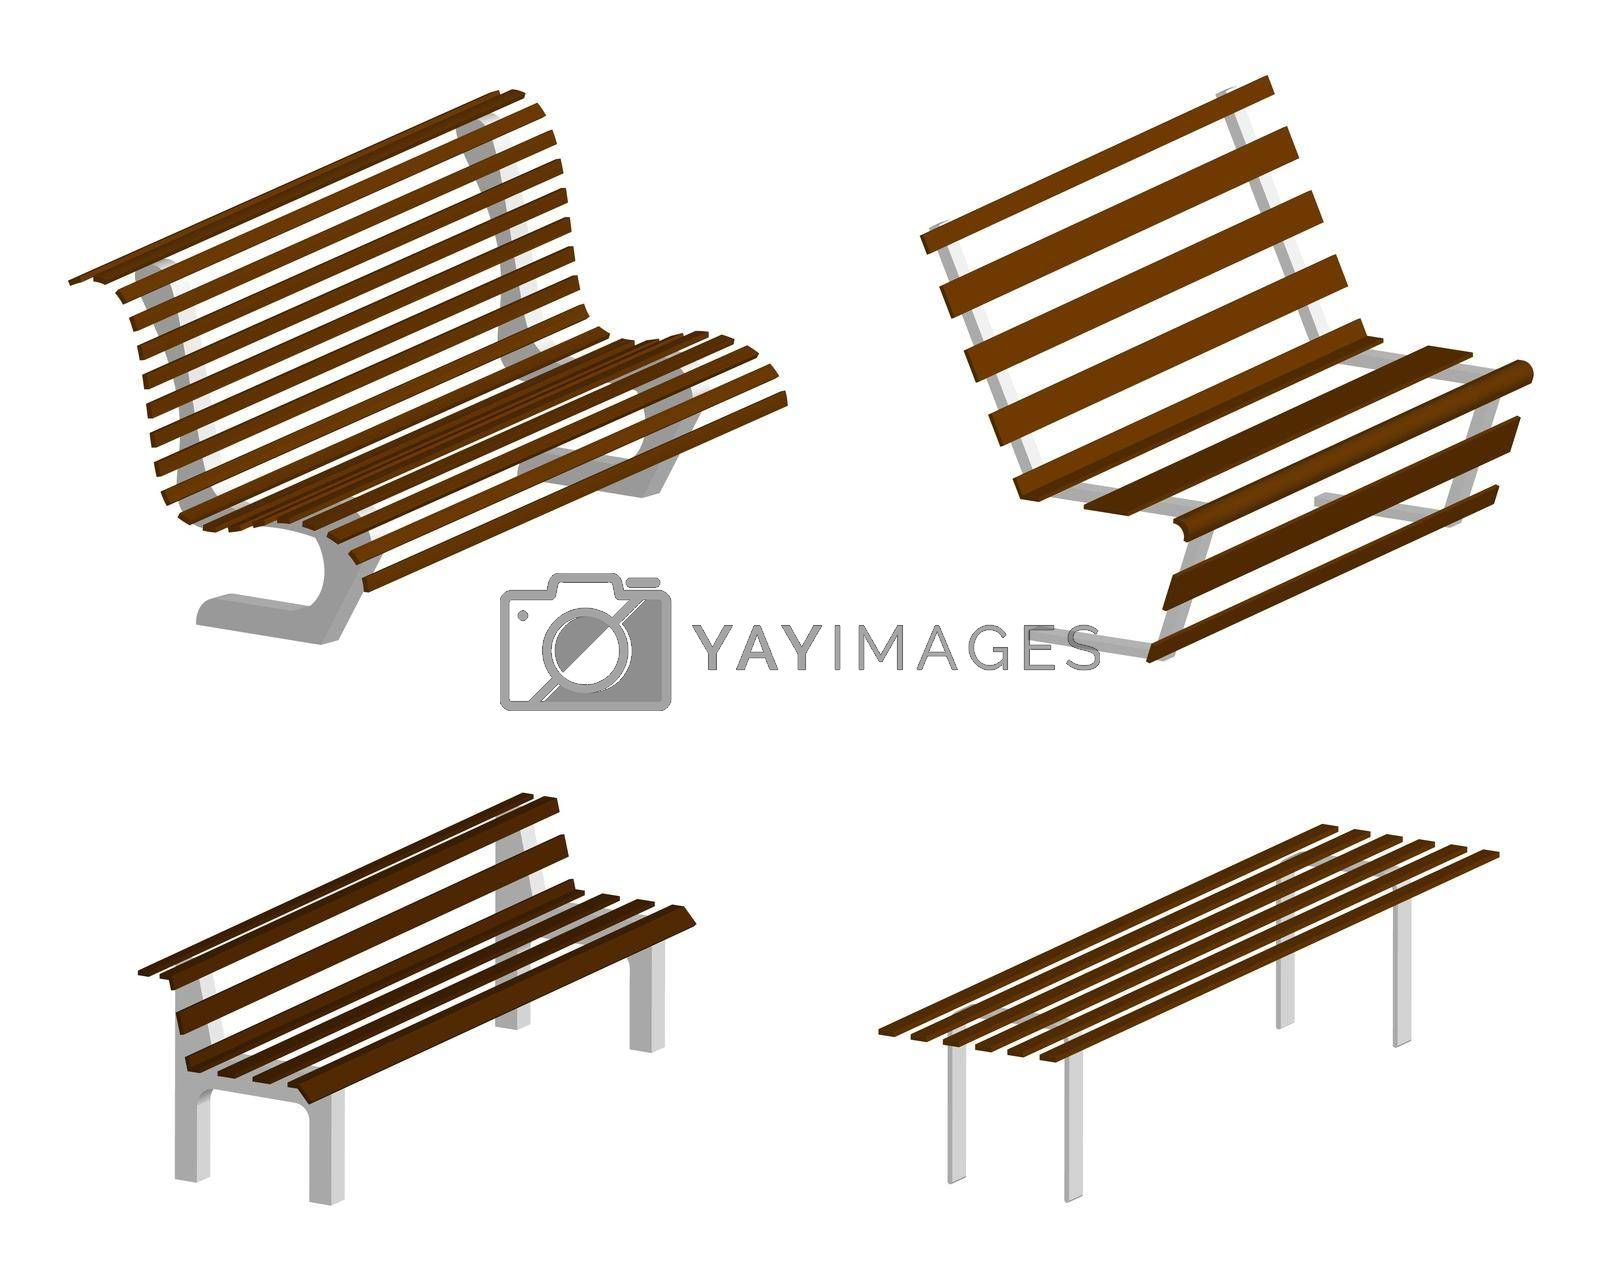 Royalty free image of isometric 3d vector, set of park and garden benches on a transparent background by RNko